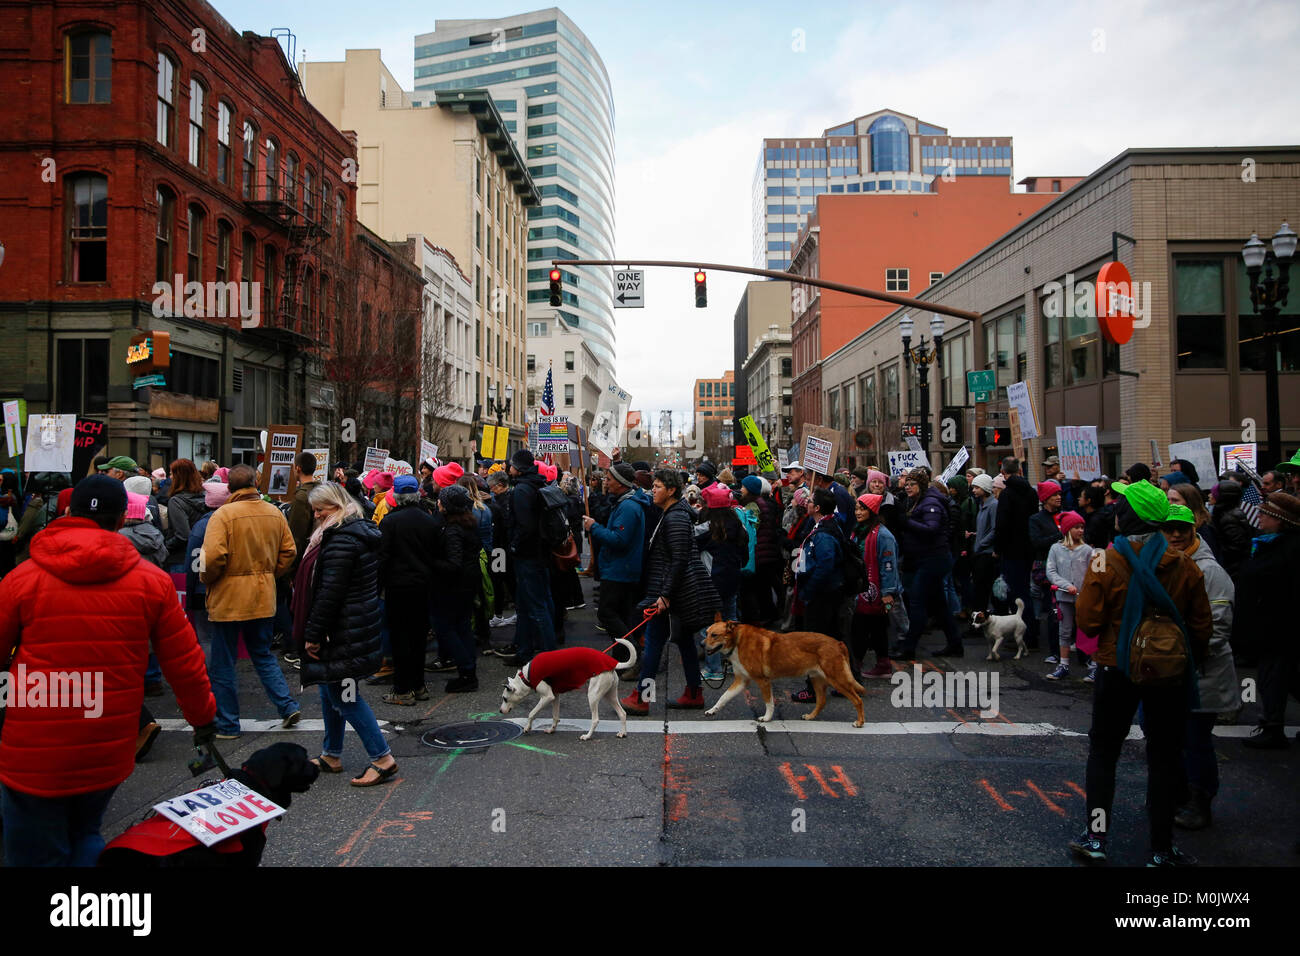 Women march for their rights and to protest against President Donald Trump on January 20, 2018. Portland, Oregon, - Stock Image